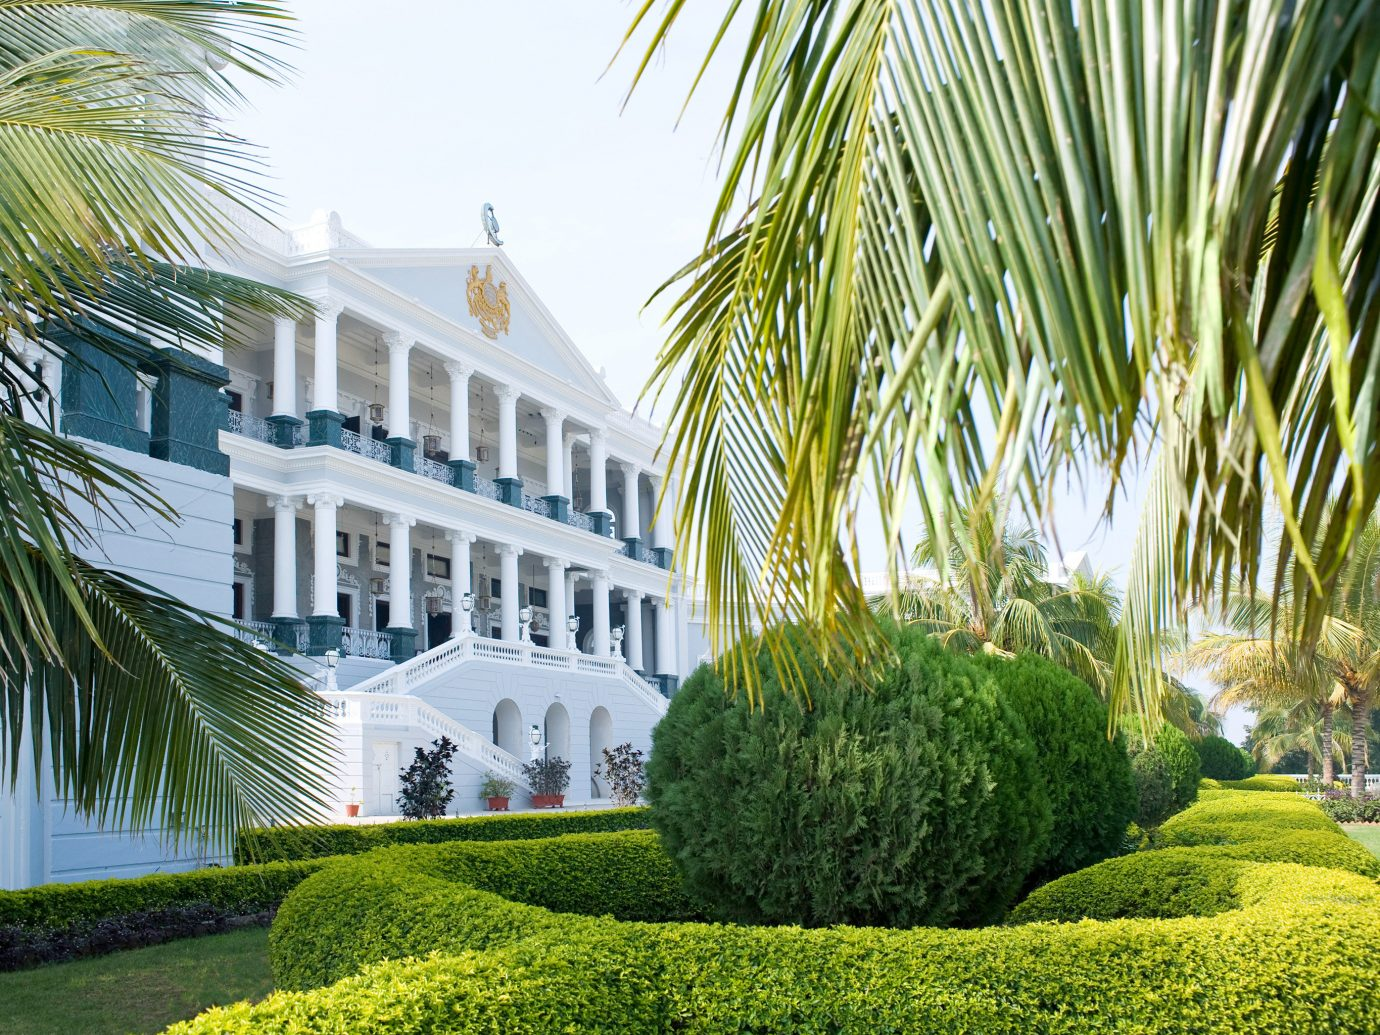 Architecture Buildings Design Elegant Exterior Grounds Hotels Luxury tree outdoor grass property green house estate botany Garden palm home plant lawn arecales Courtyard condominium backyard mansion Resort facade palm family yard plantation